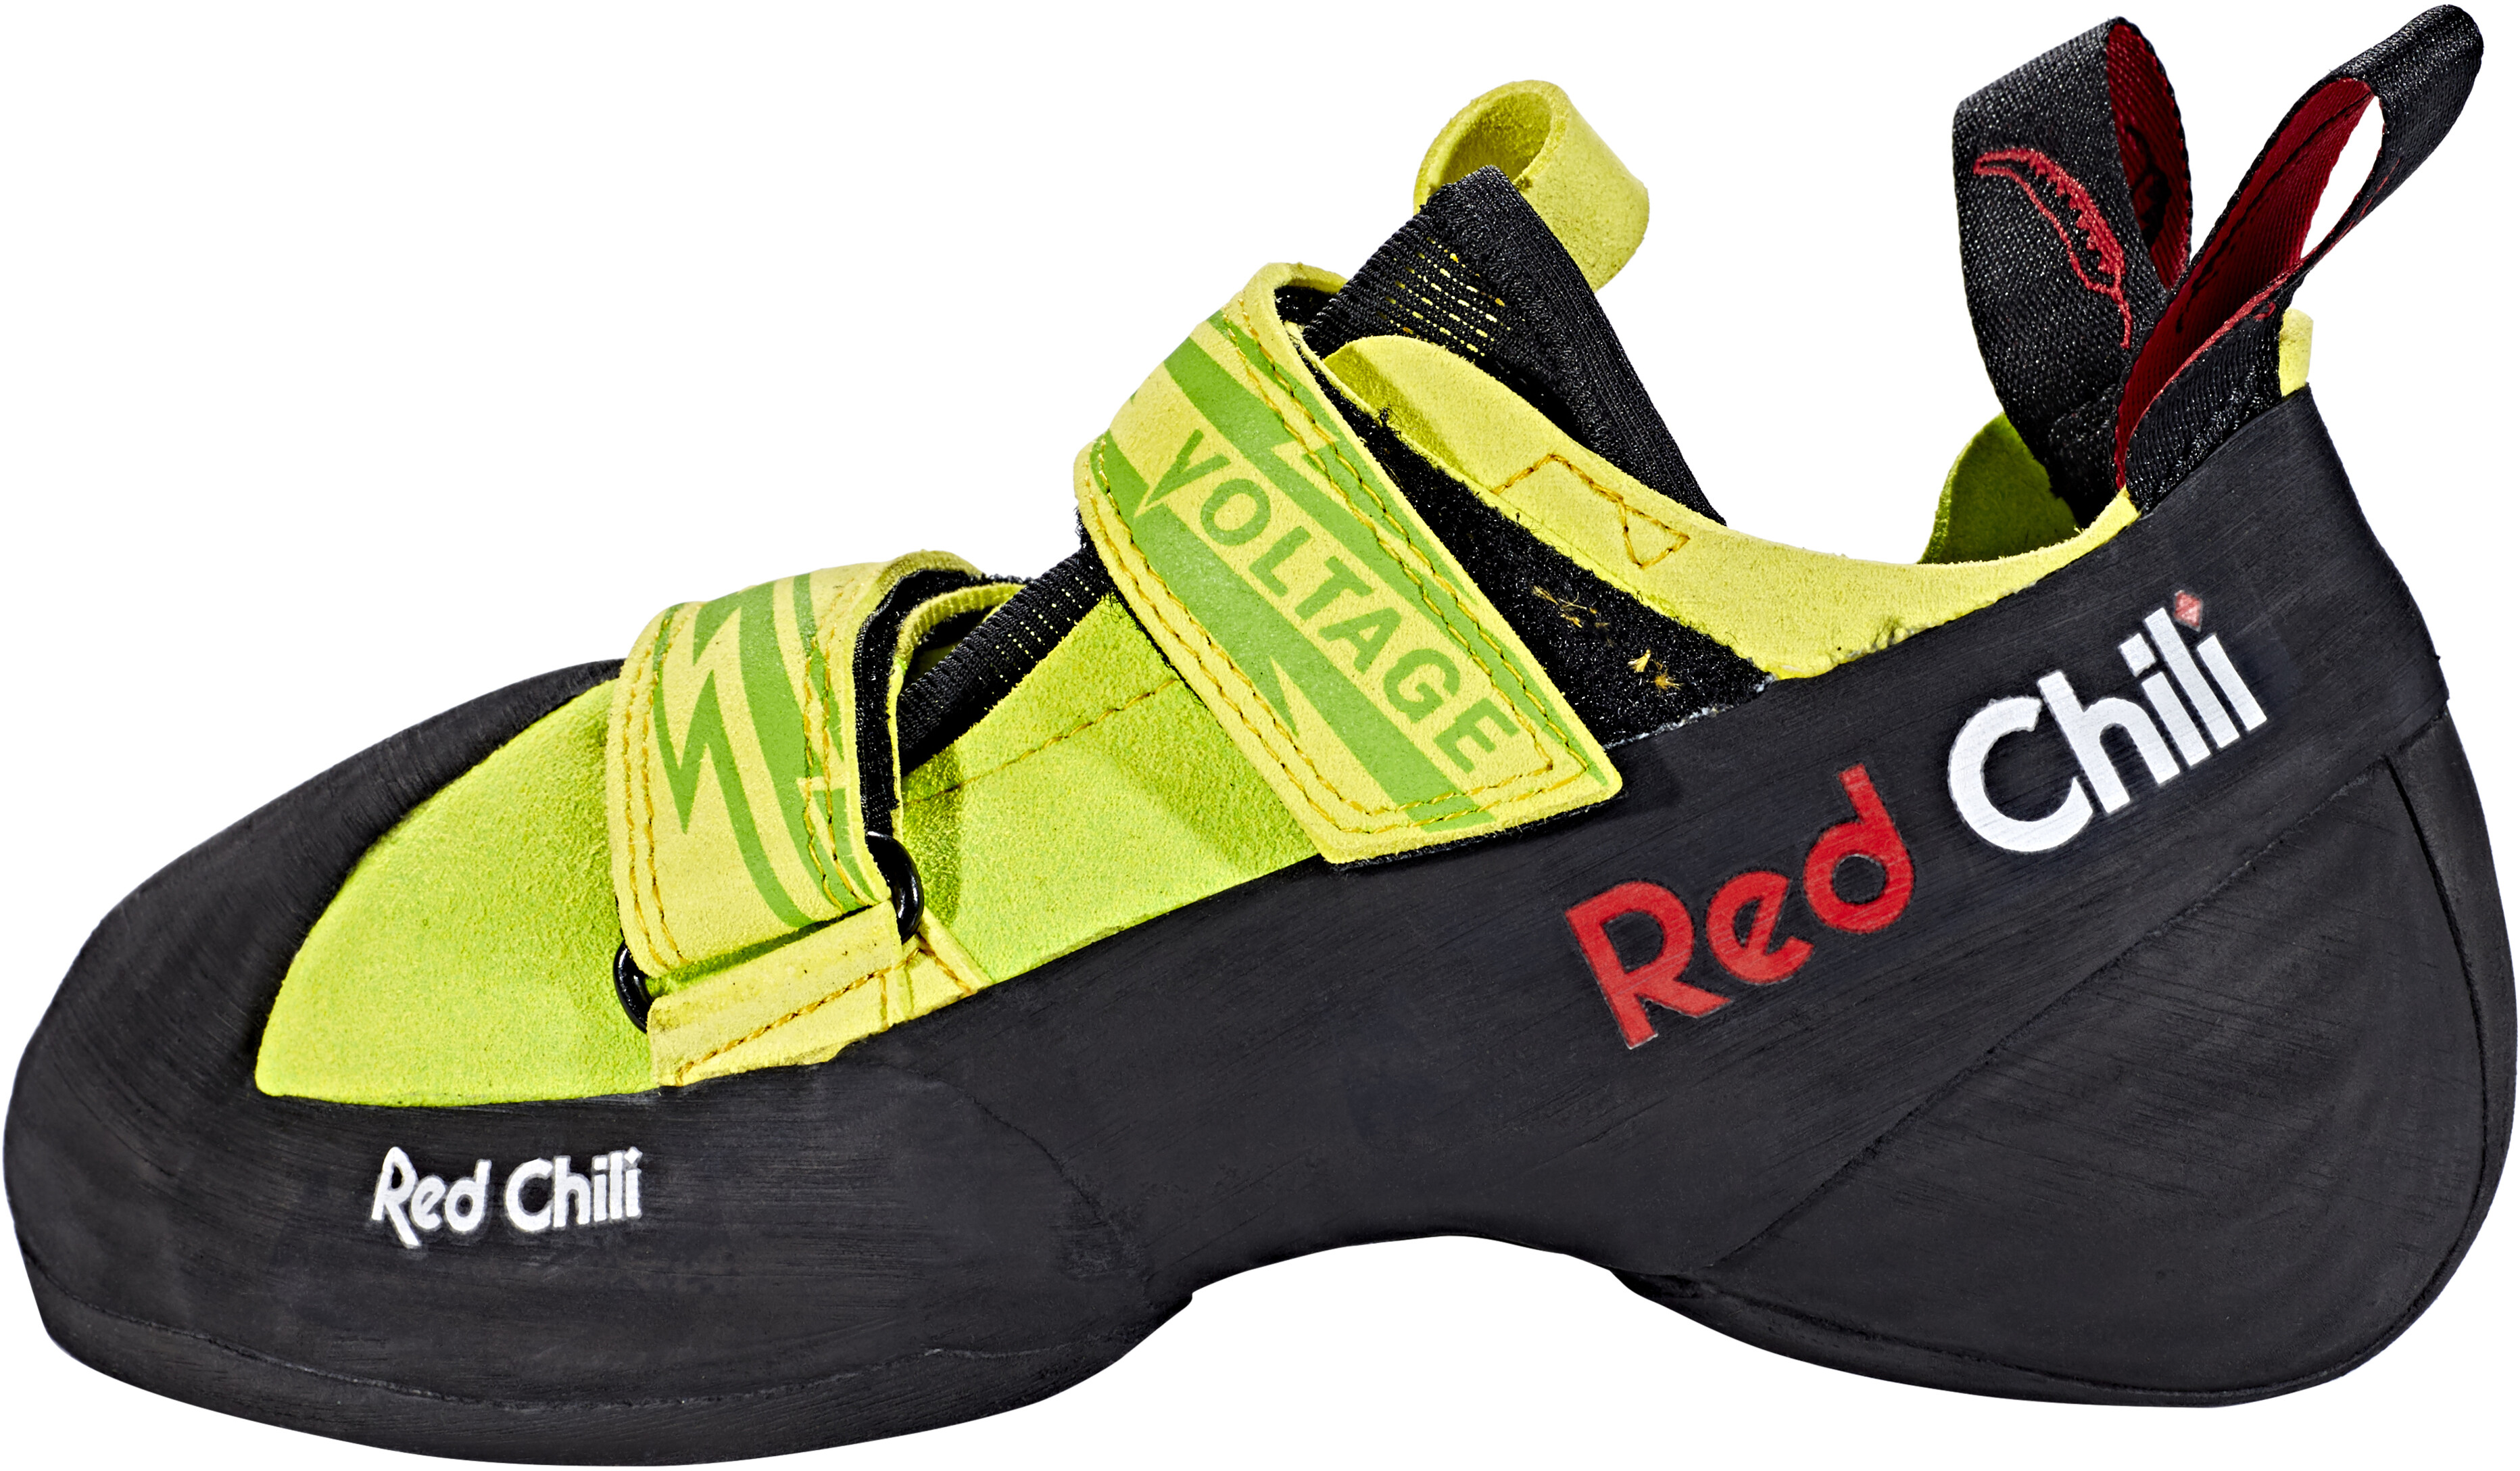 Red Chili Climbing Shoes Size